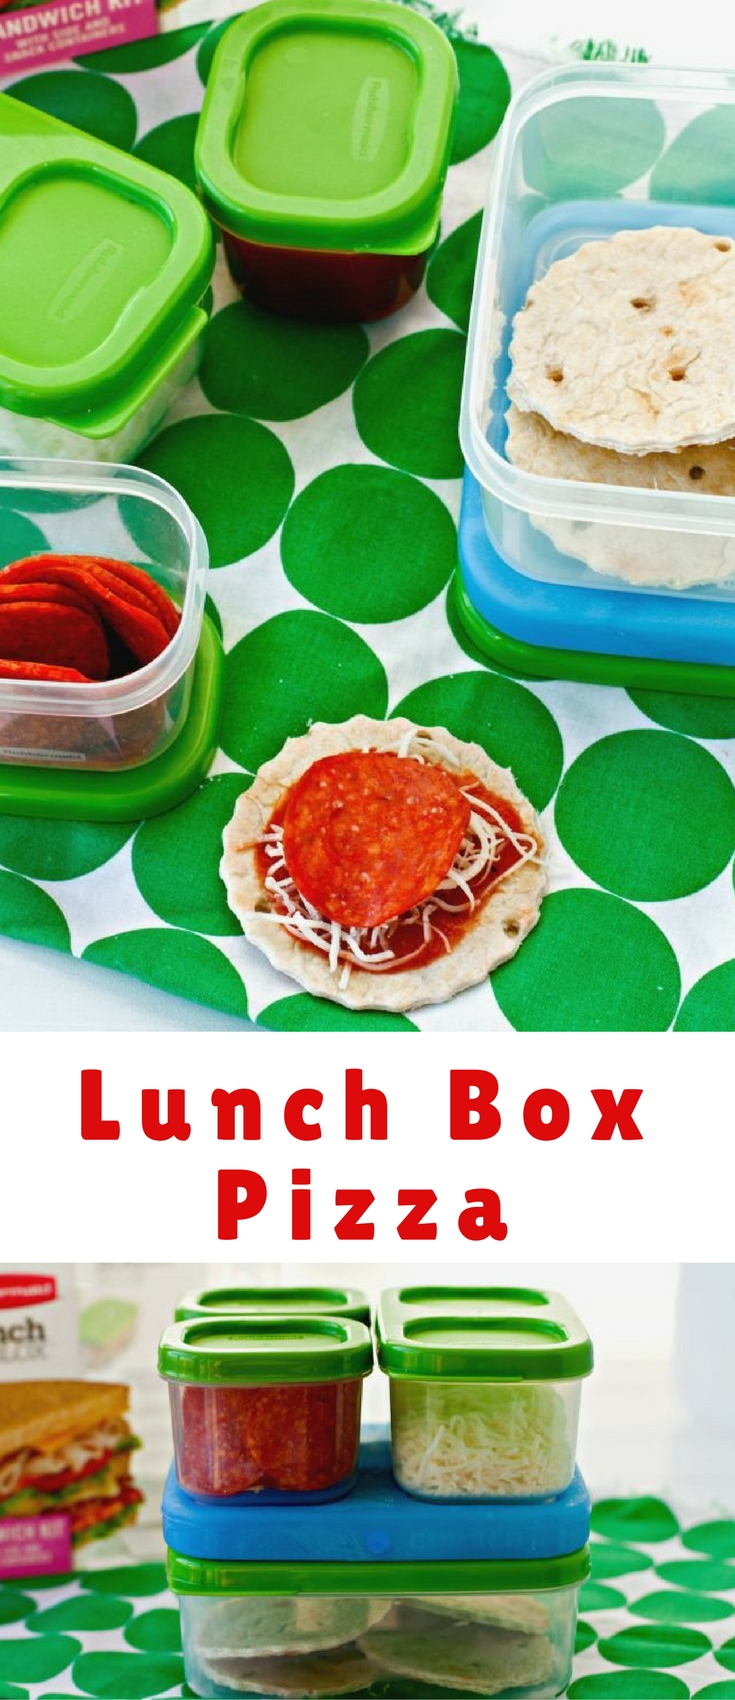 Lunch Box Pizza - Your kids will love these mini pizzas at lunchtime. They're easy to prepare and so fun!